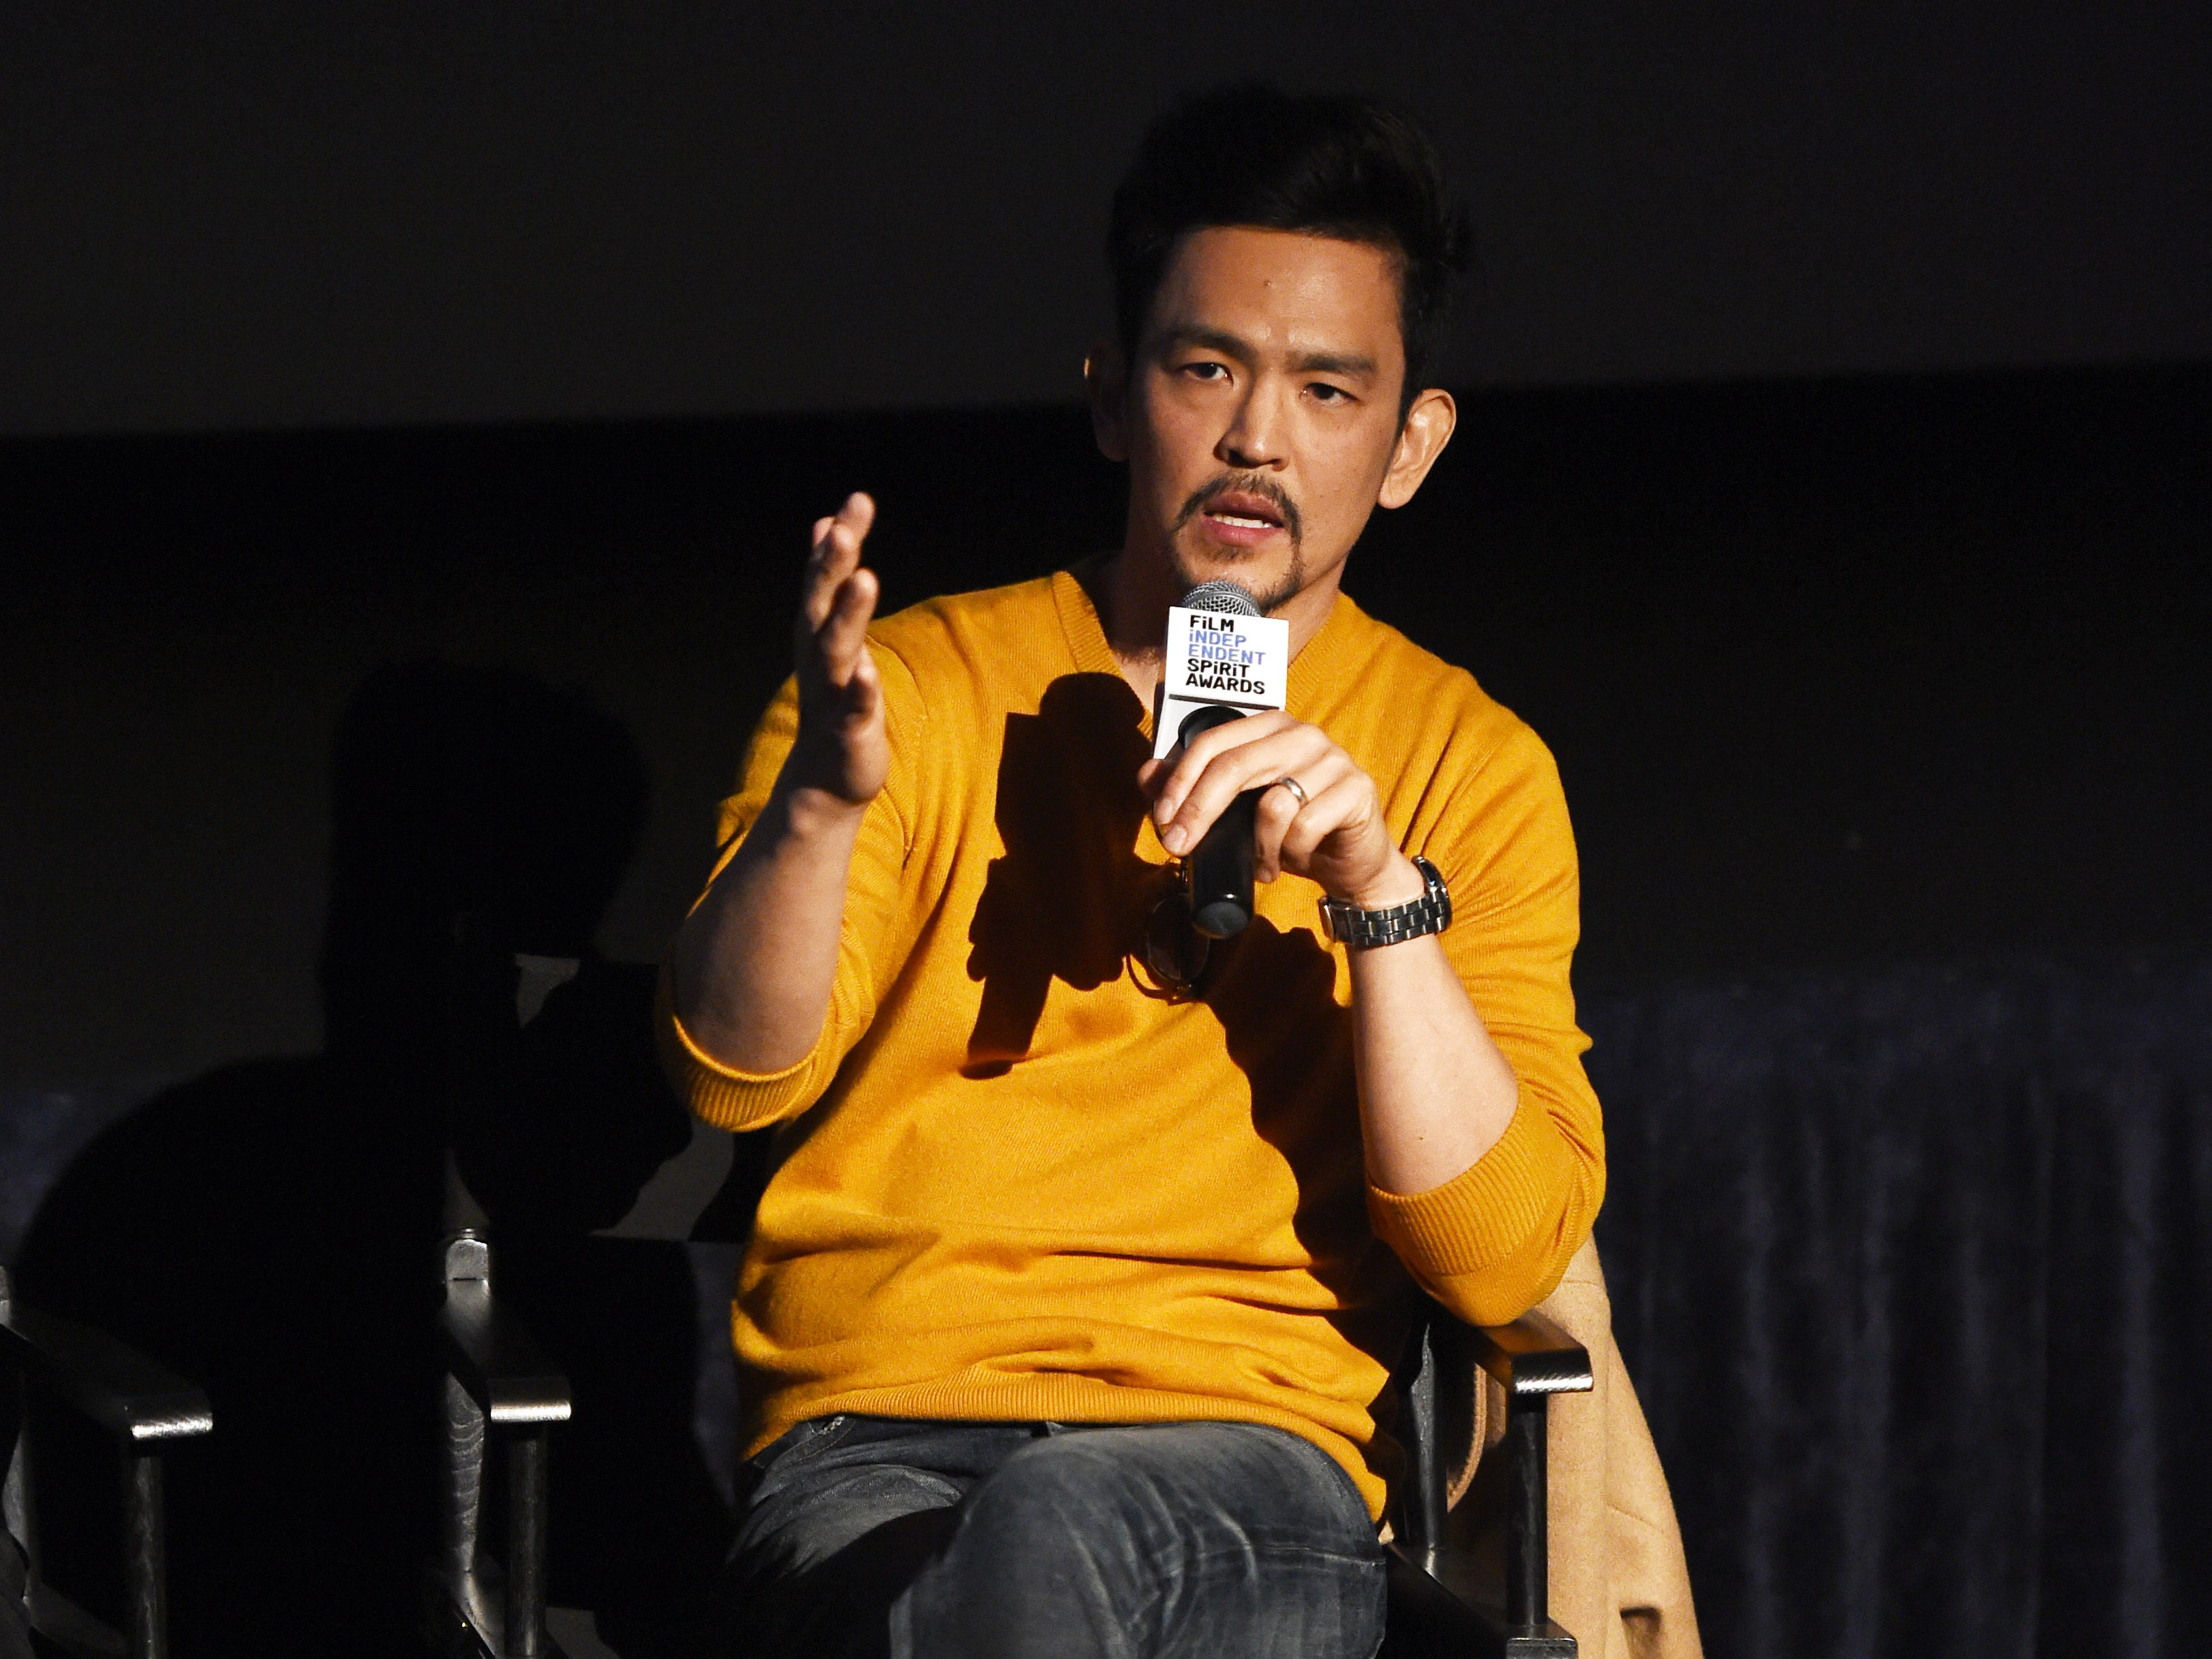 """CULVER CITY, CALIFORNIA - JANUARY 21:  John Cho attends the Film Independent Spirit Awards Screening Series screening of """"Searching"""" at ArcLight Culver City on January 21, 2019 in Culver City, California. (Photo by Amanda Edwards/Getty Images) ORG XMIT: 775276696 ORIG FILE ID: 1097741906"""